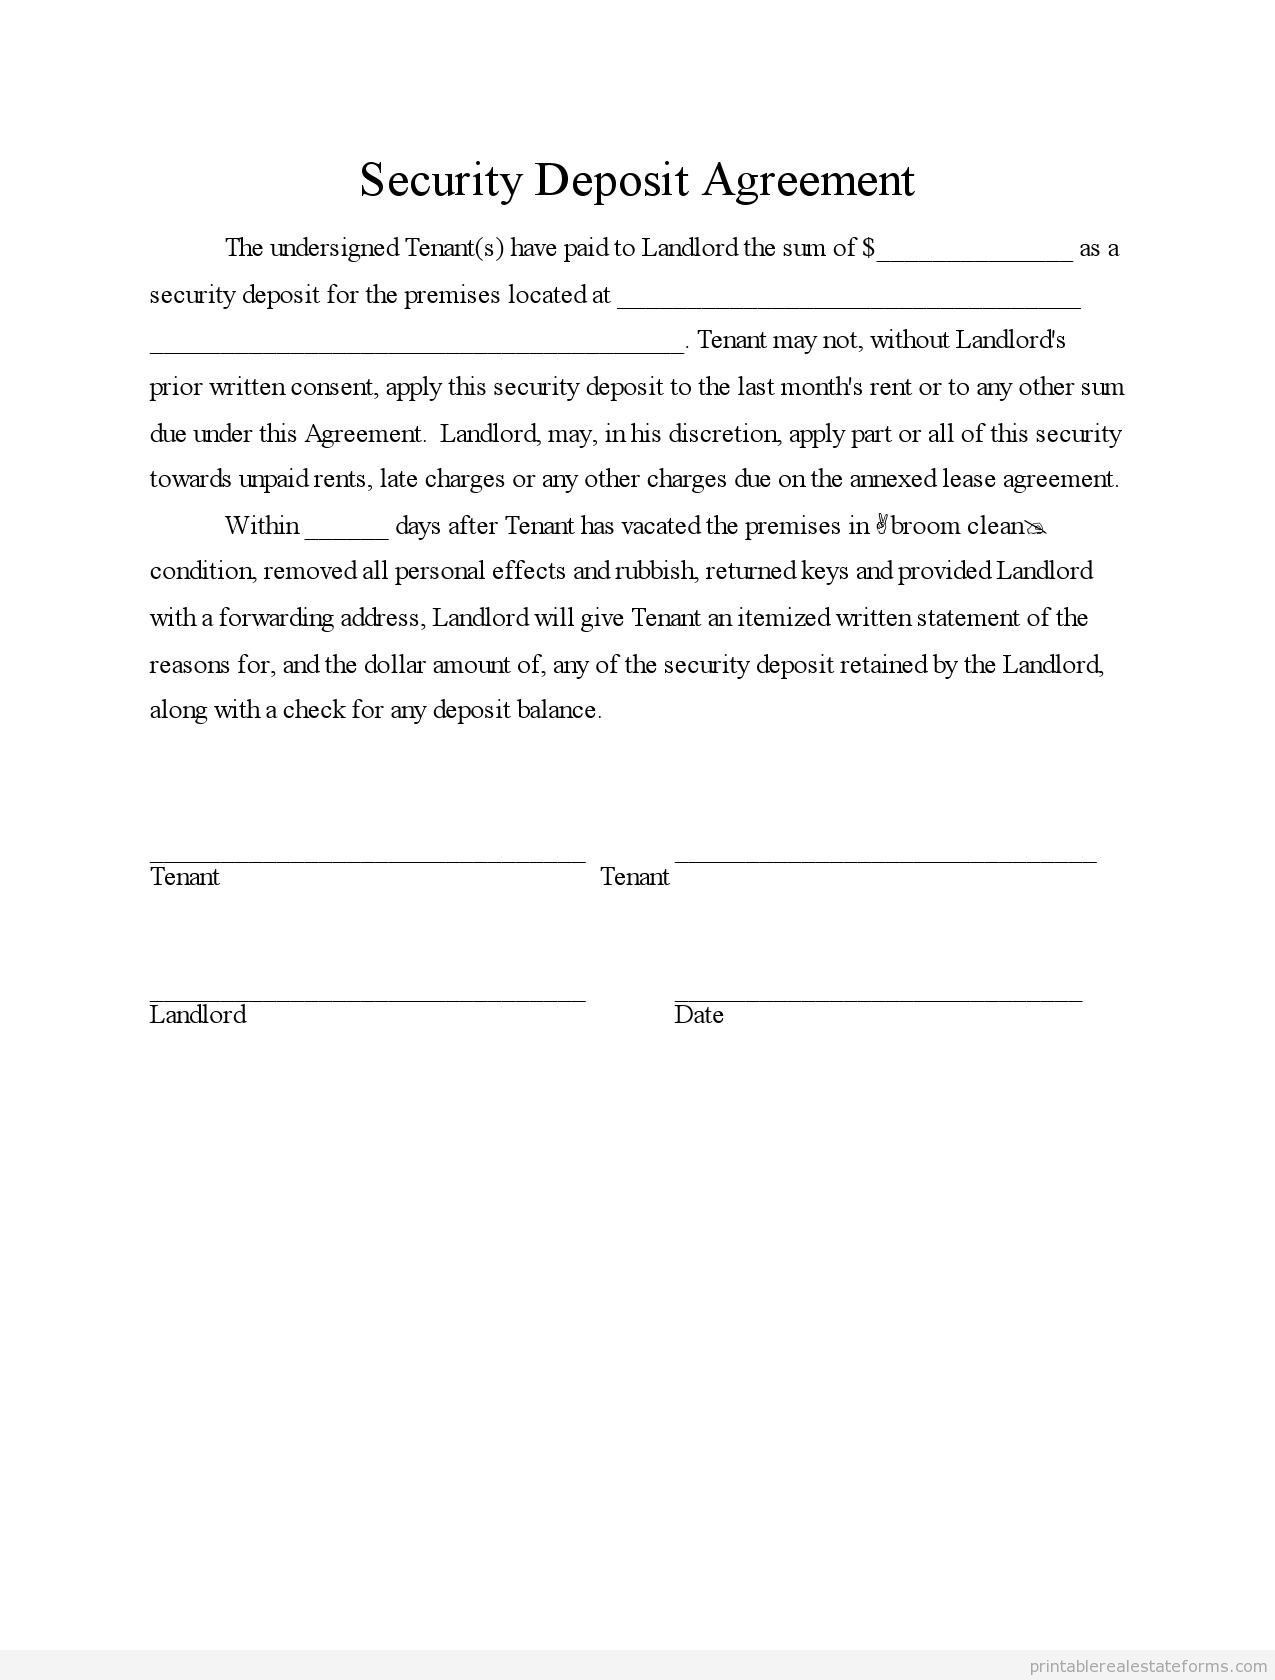 Agreement Form | Sample Printable Security Deposit Agreement Form Sample Real